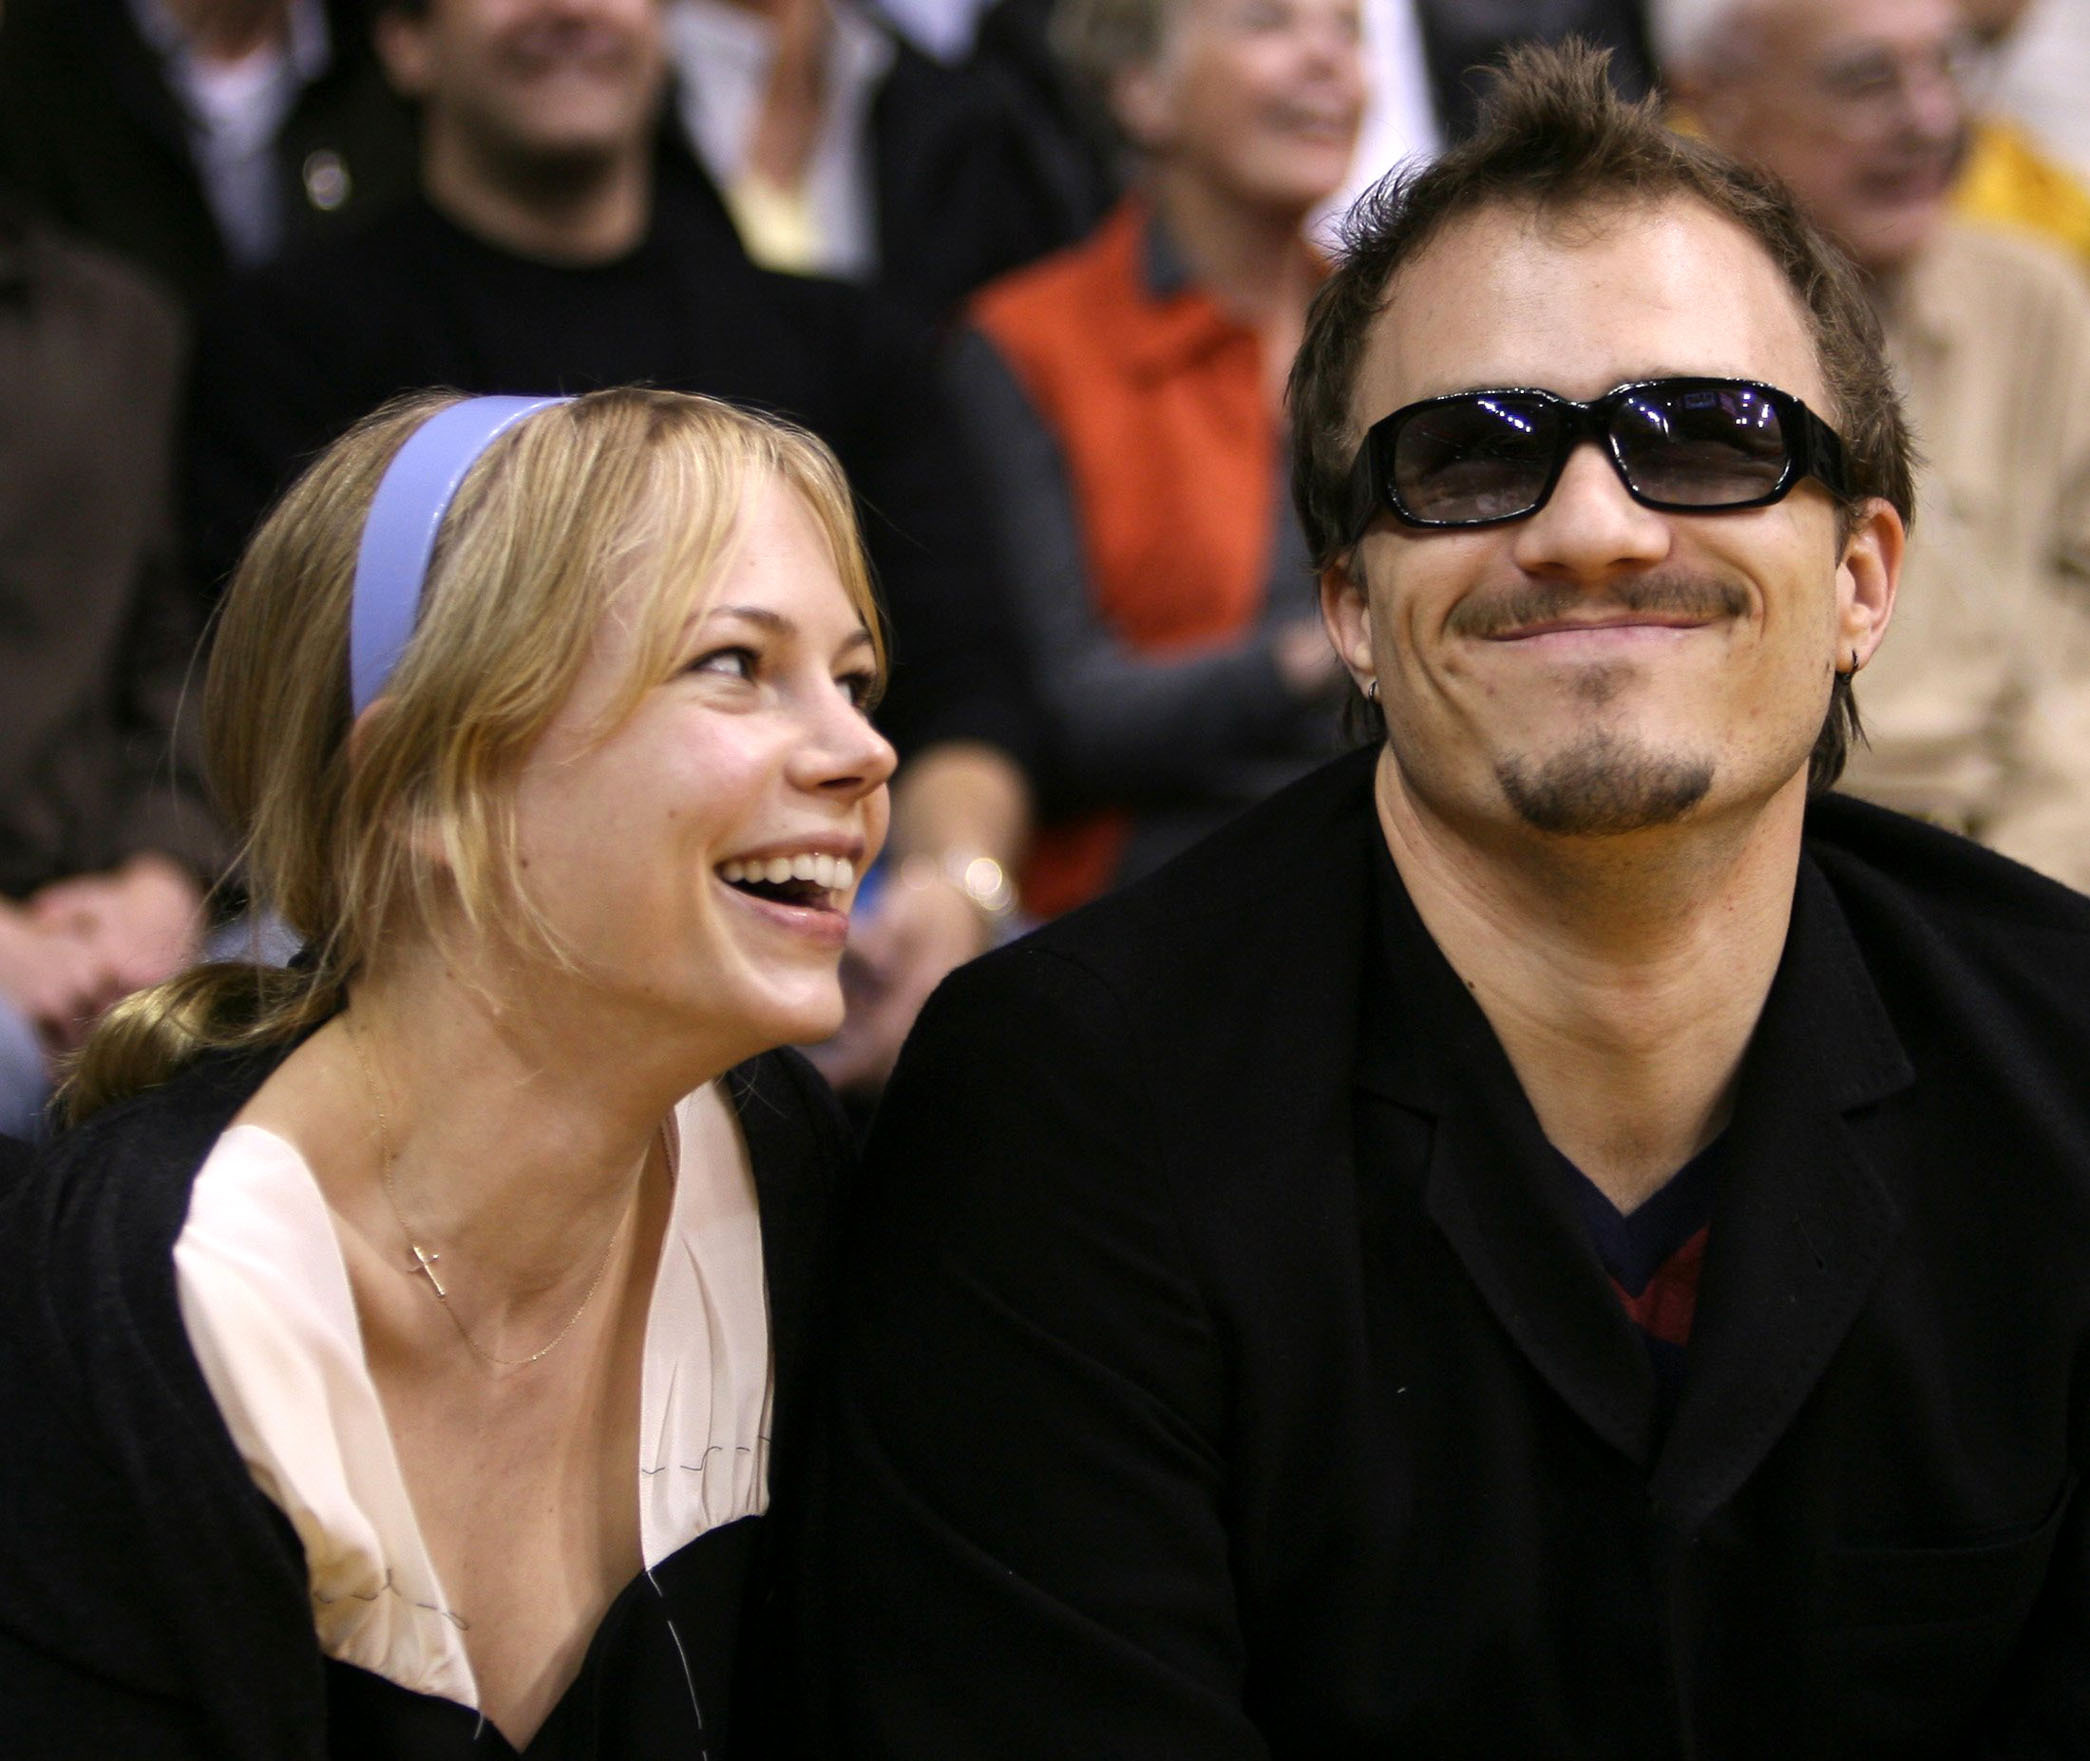 6 -  Michelle Williams and her boyfriend Health Ledger attend a basketball game in 2006.